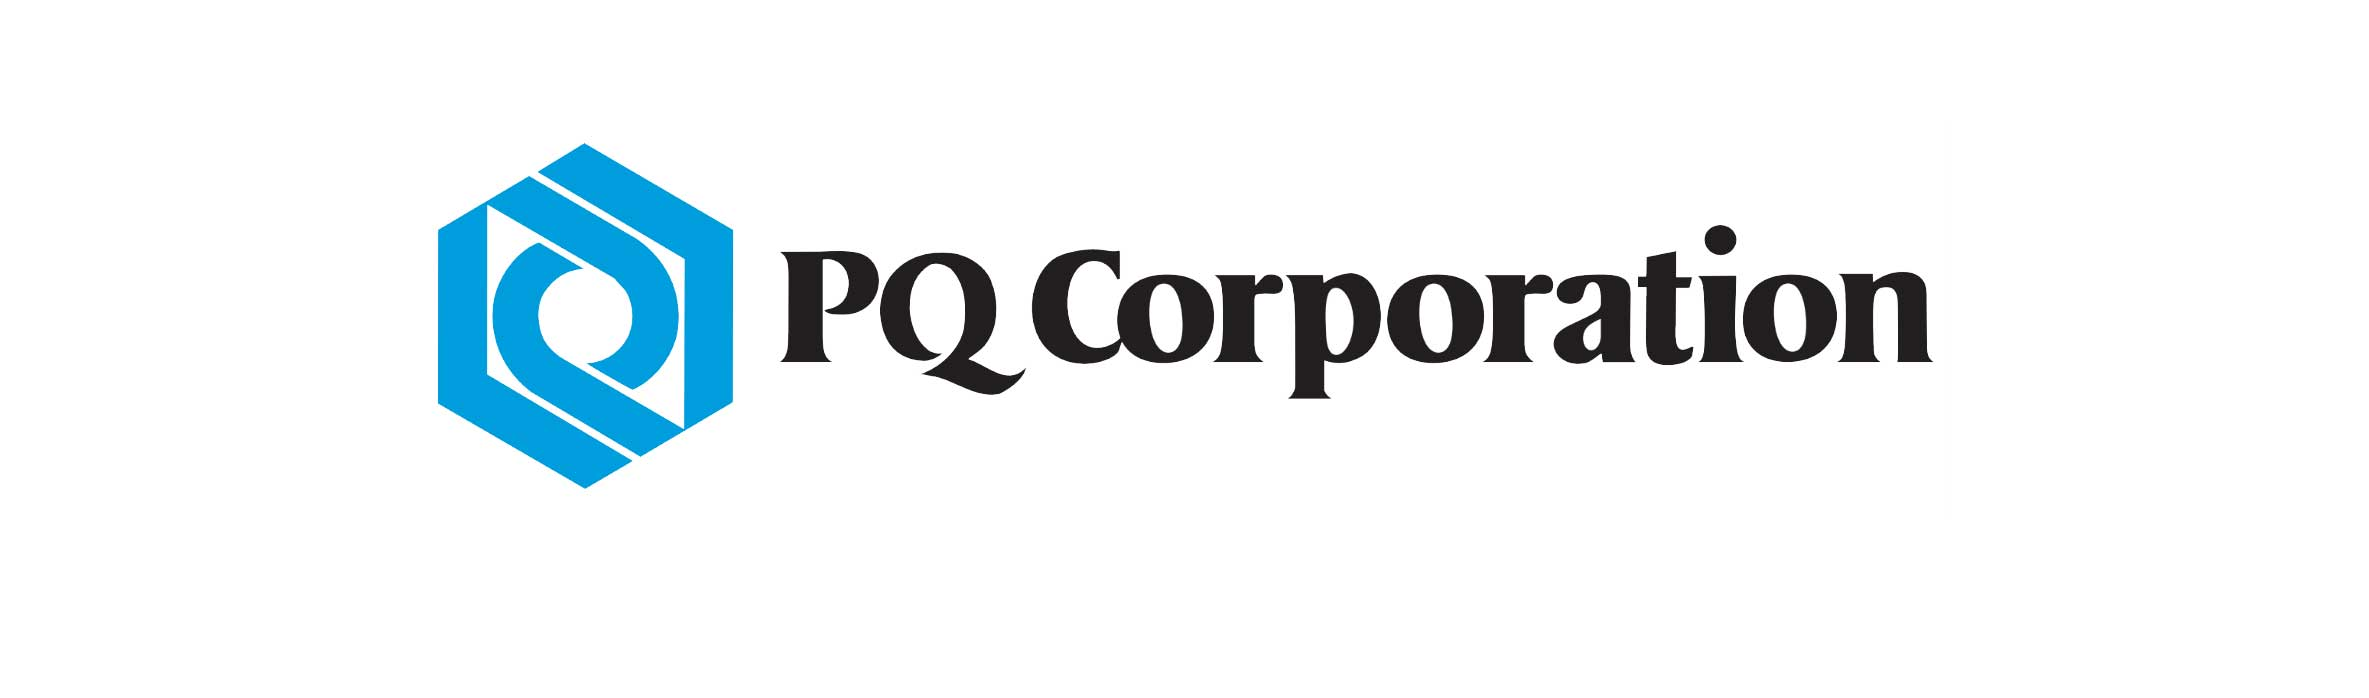 PQ Corporation is sponsor van DVC '16